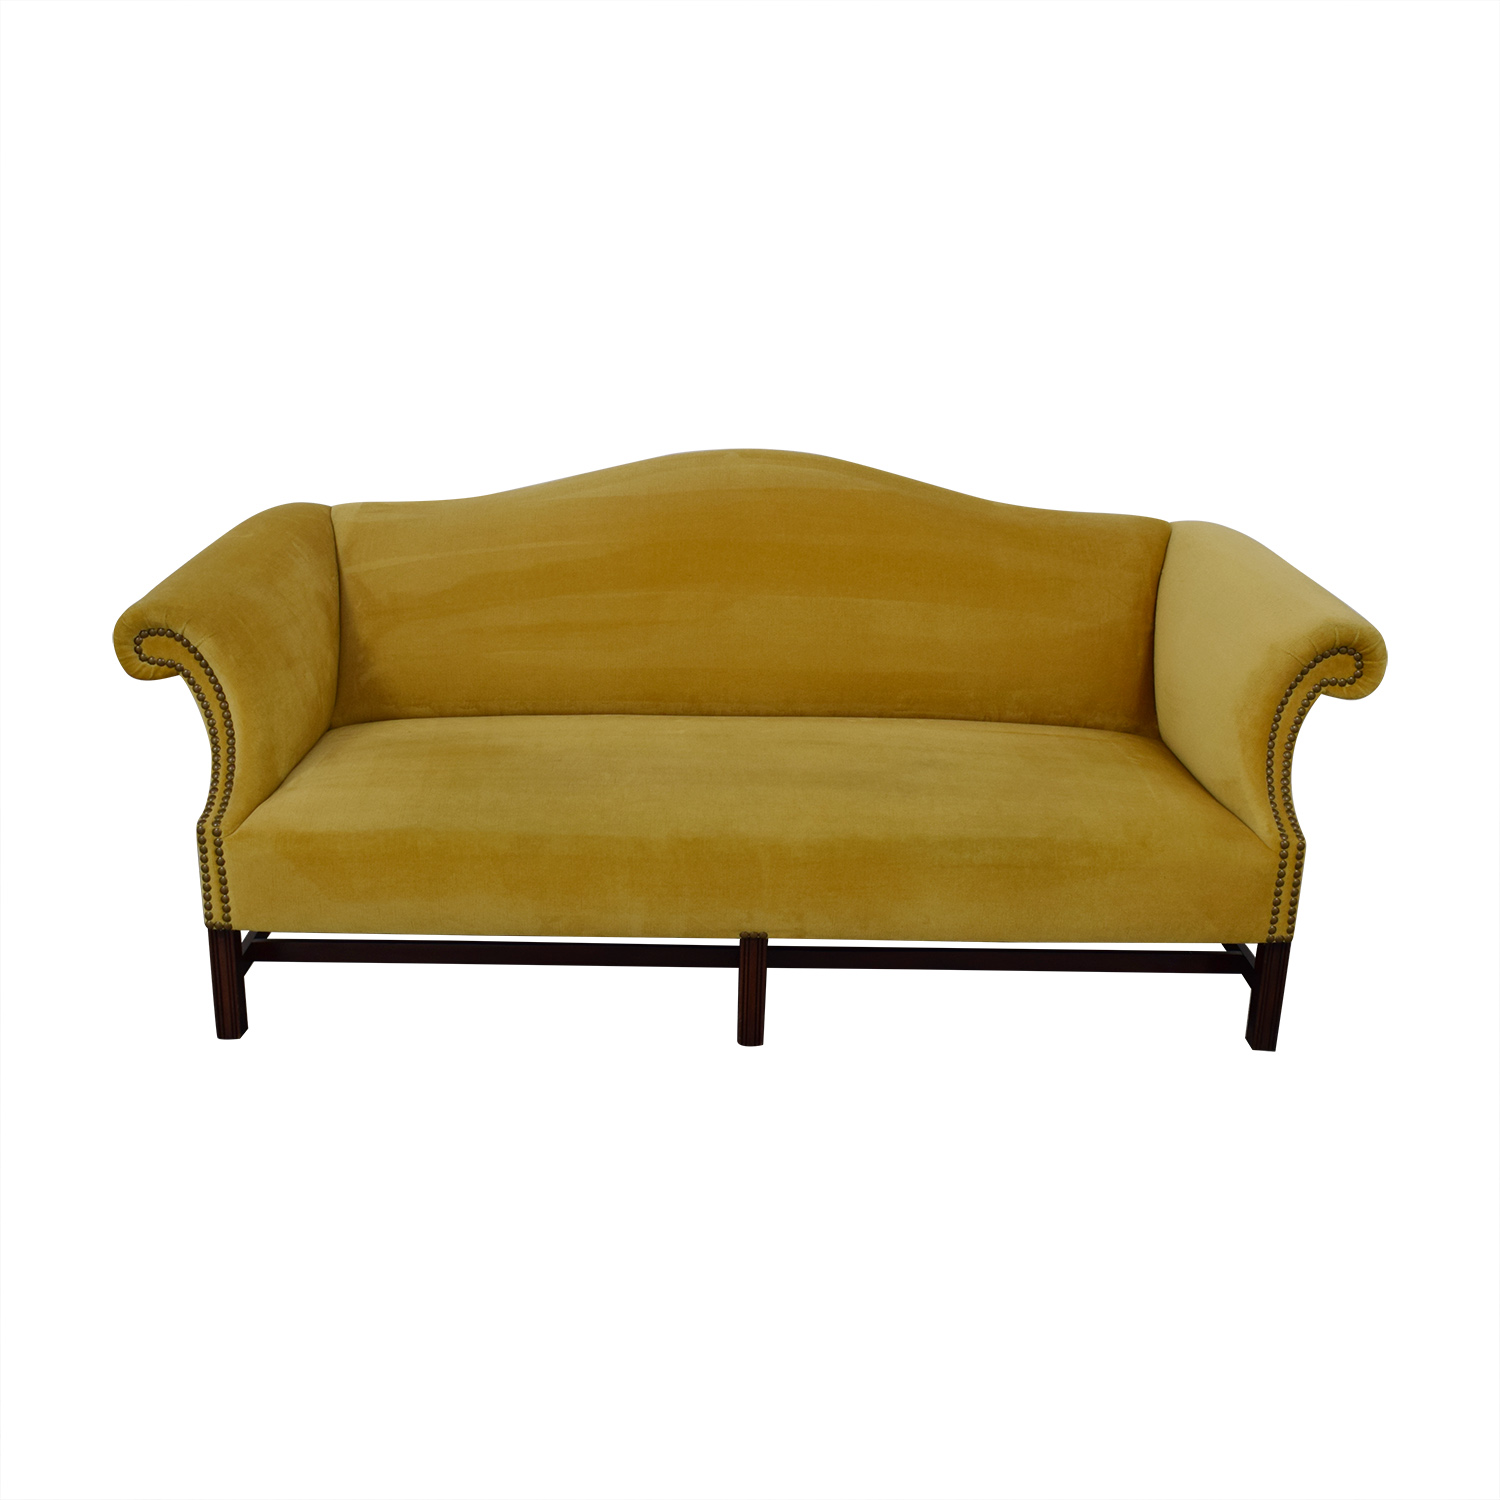 Enjoyable 51 Off West Elm West Elm Henry Sofa Sofas Inzonedesignstudio Interior Chair Design Inzonedesignstudiocom